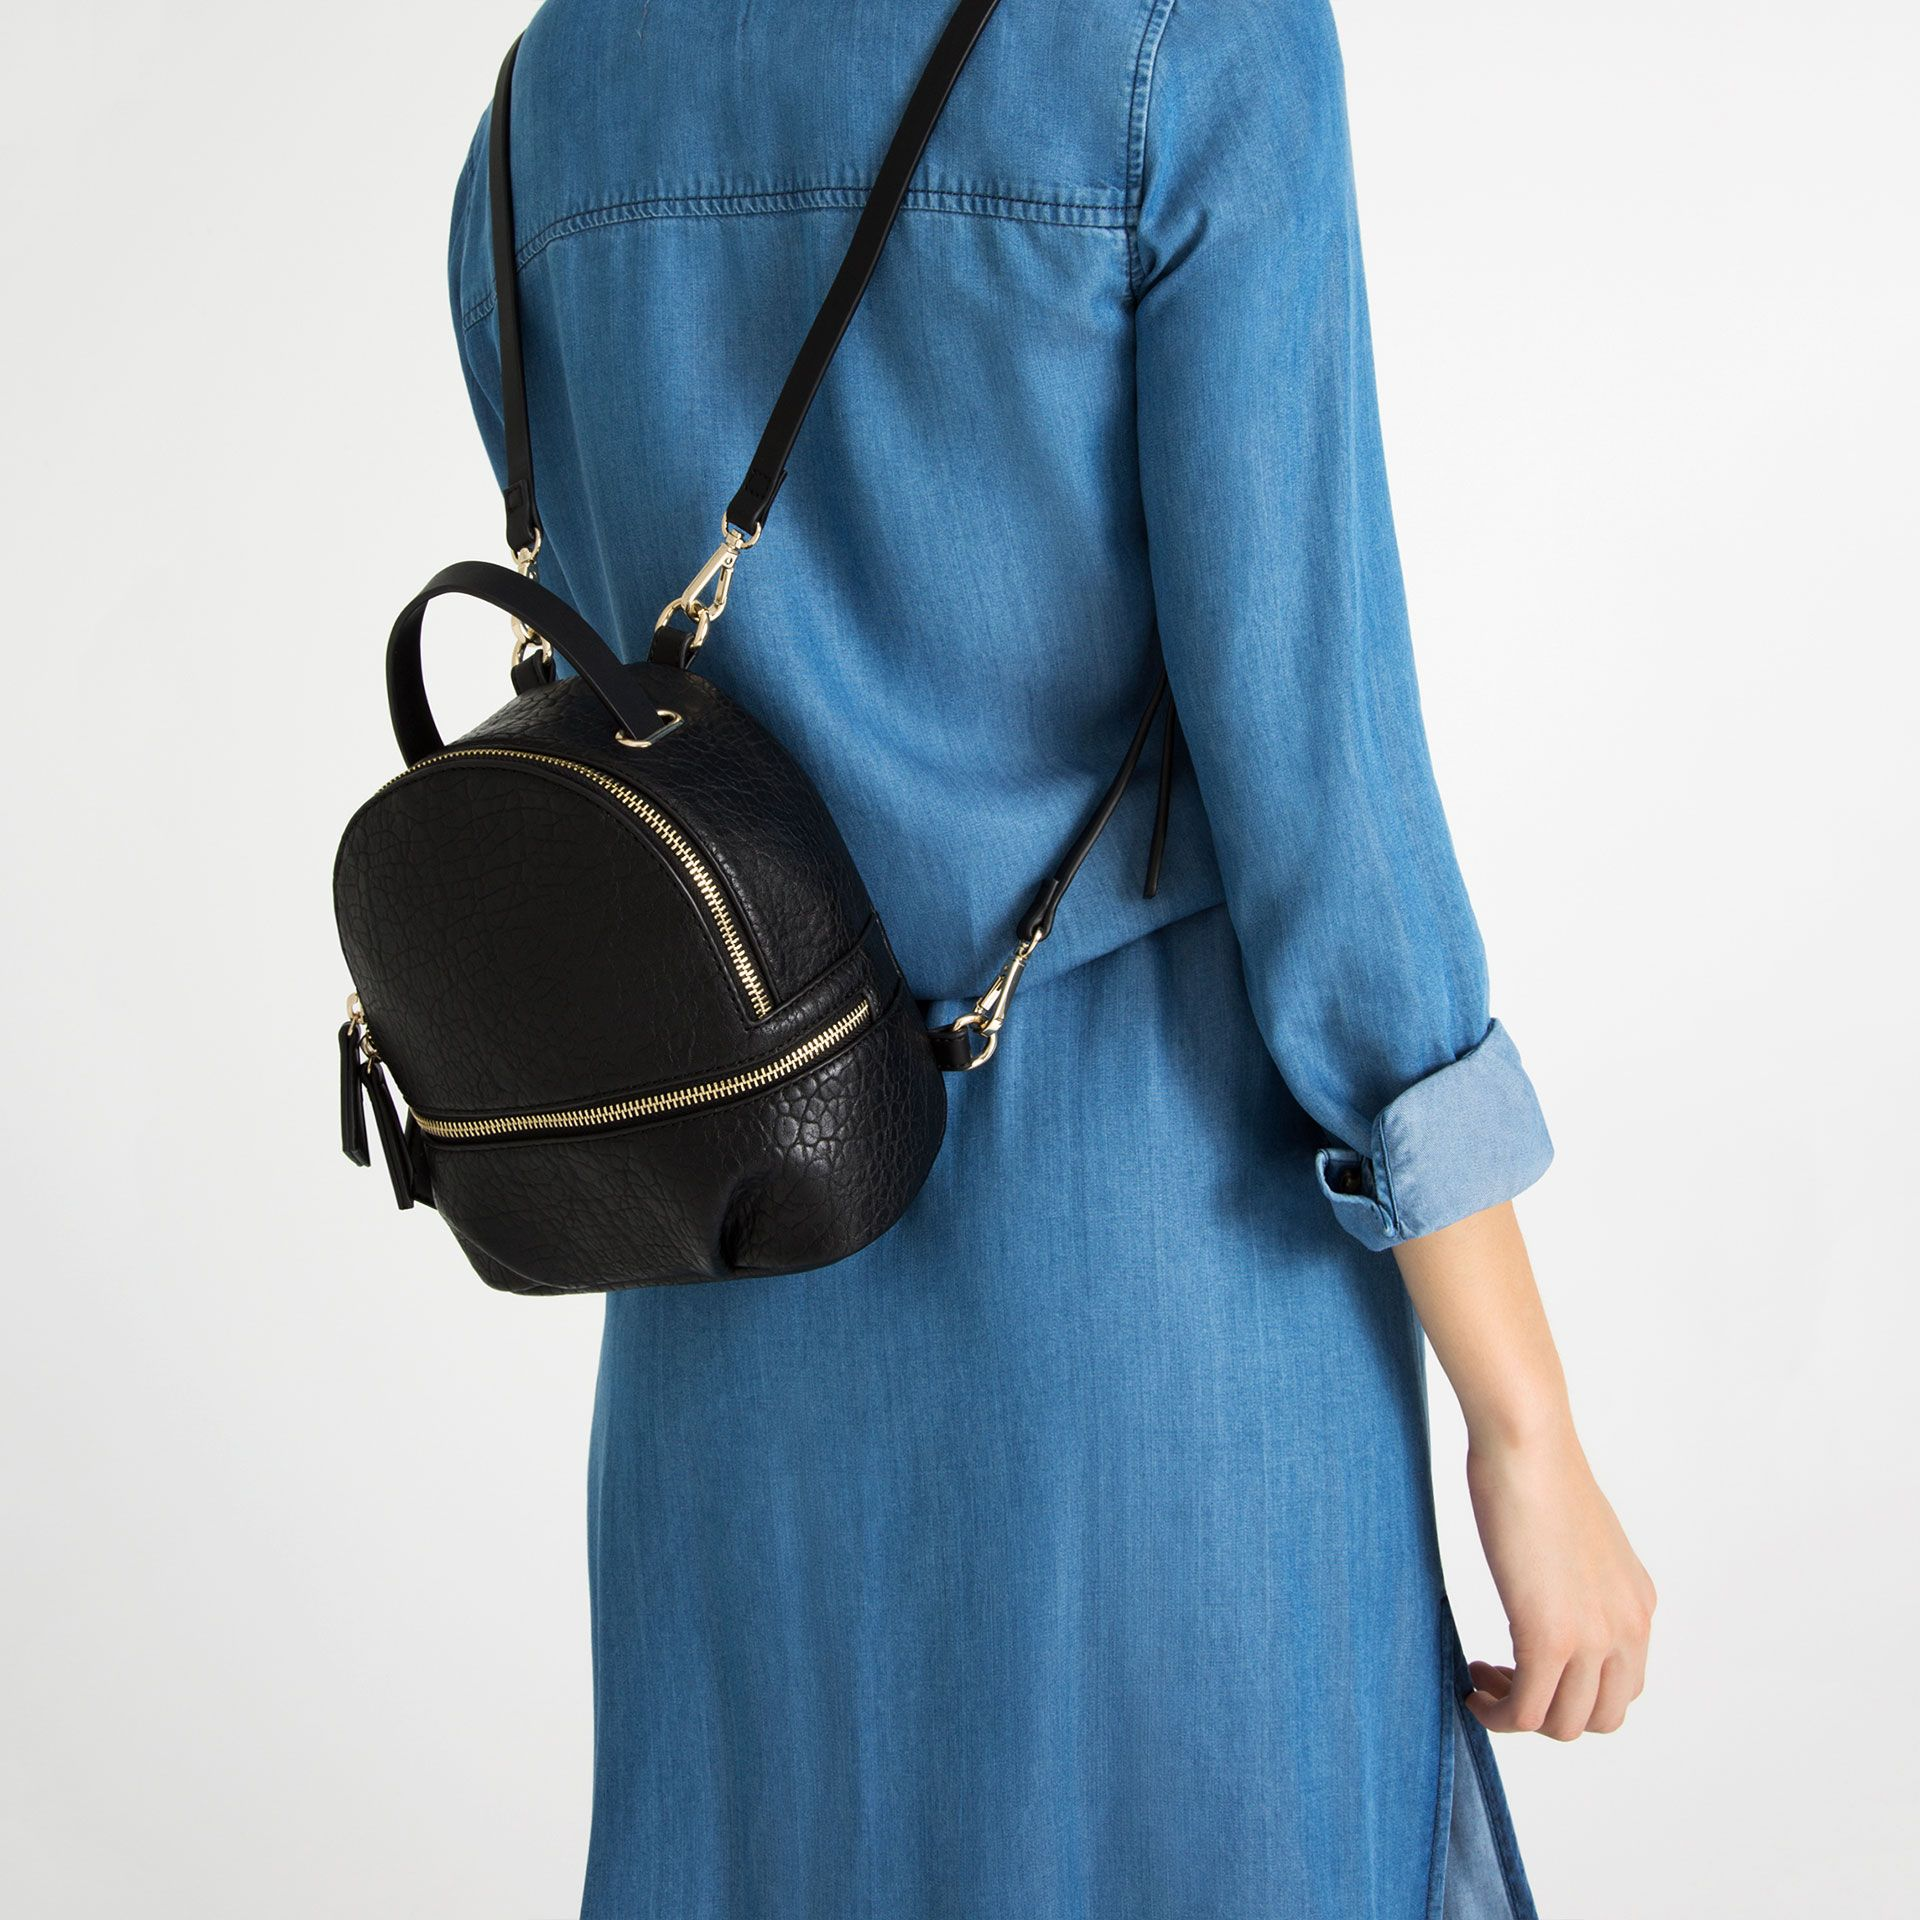 723c428d62 Image 2 of CONVERTIBLE BACKPACK from Zara | Bags Bags Bags ...